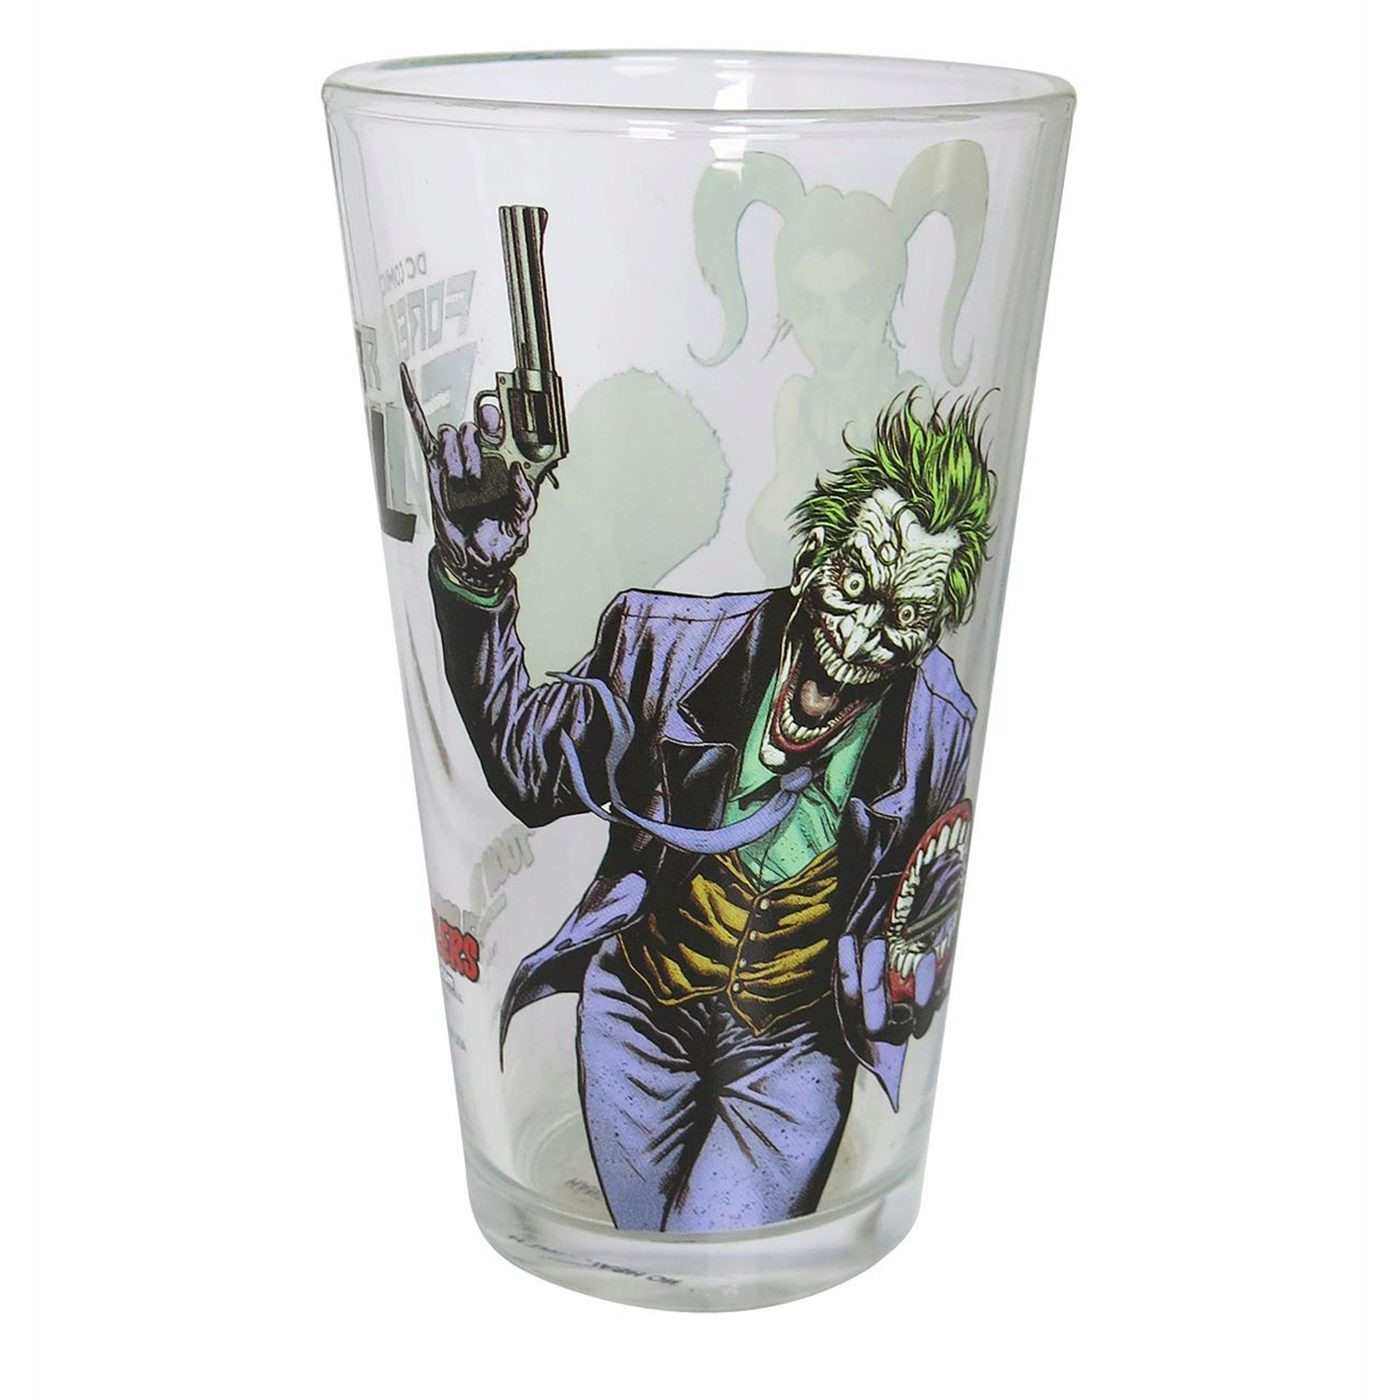 Joker and Harley Quinn Laughing Pint Glass